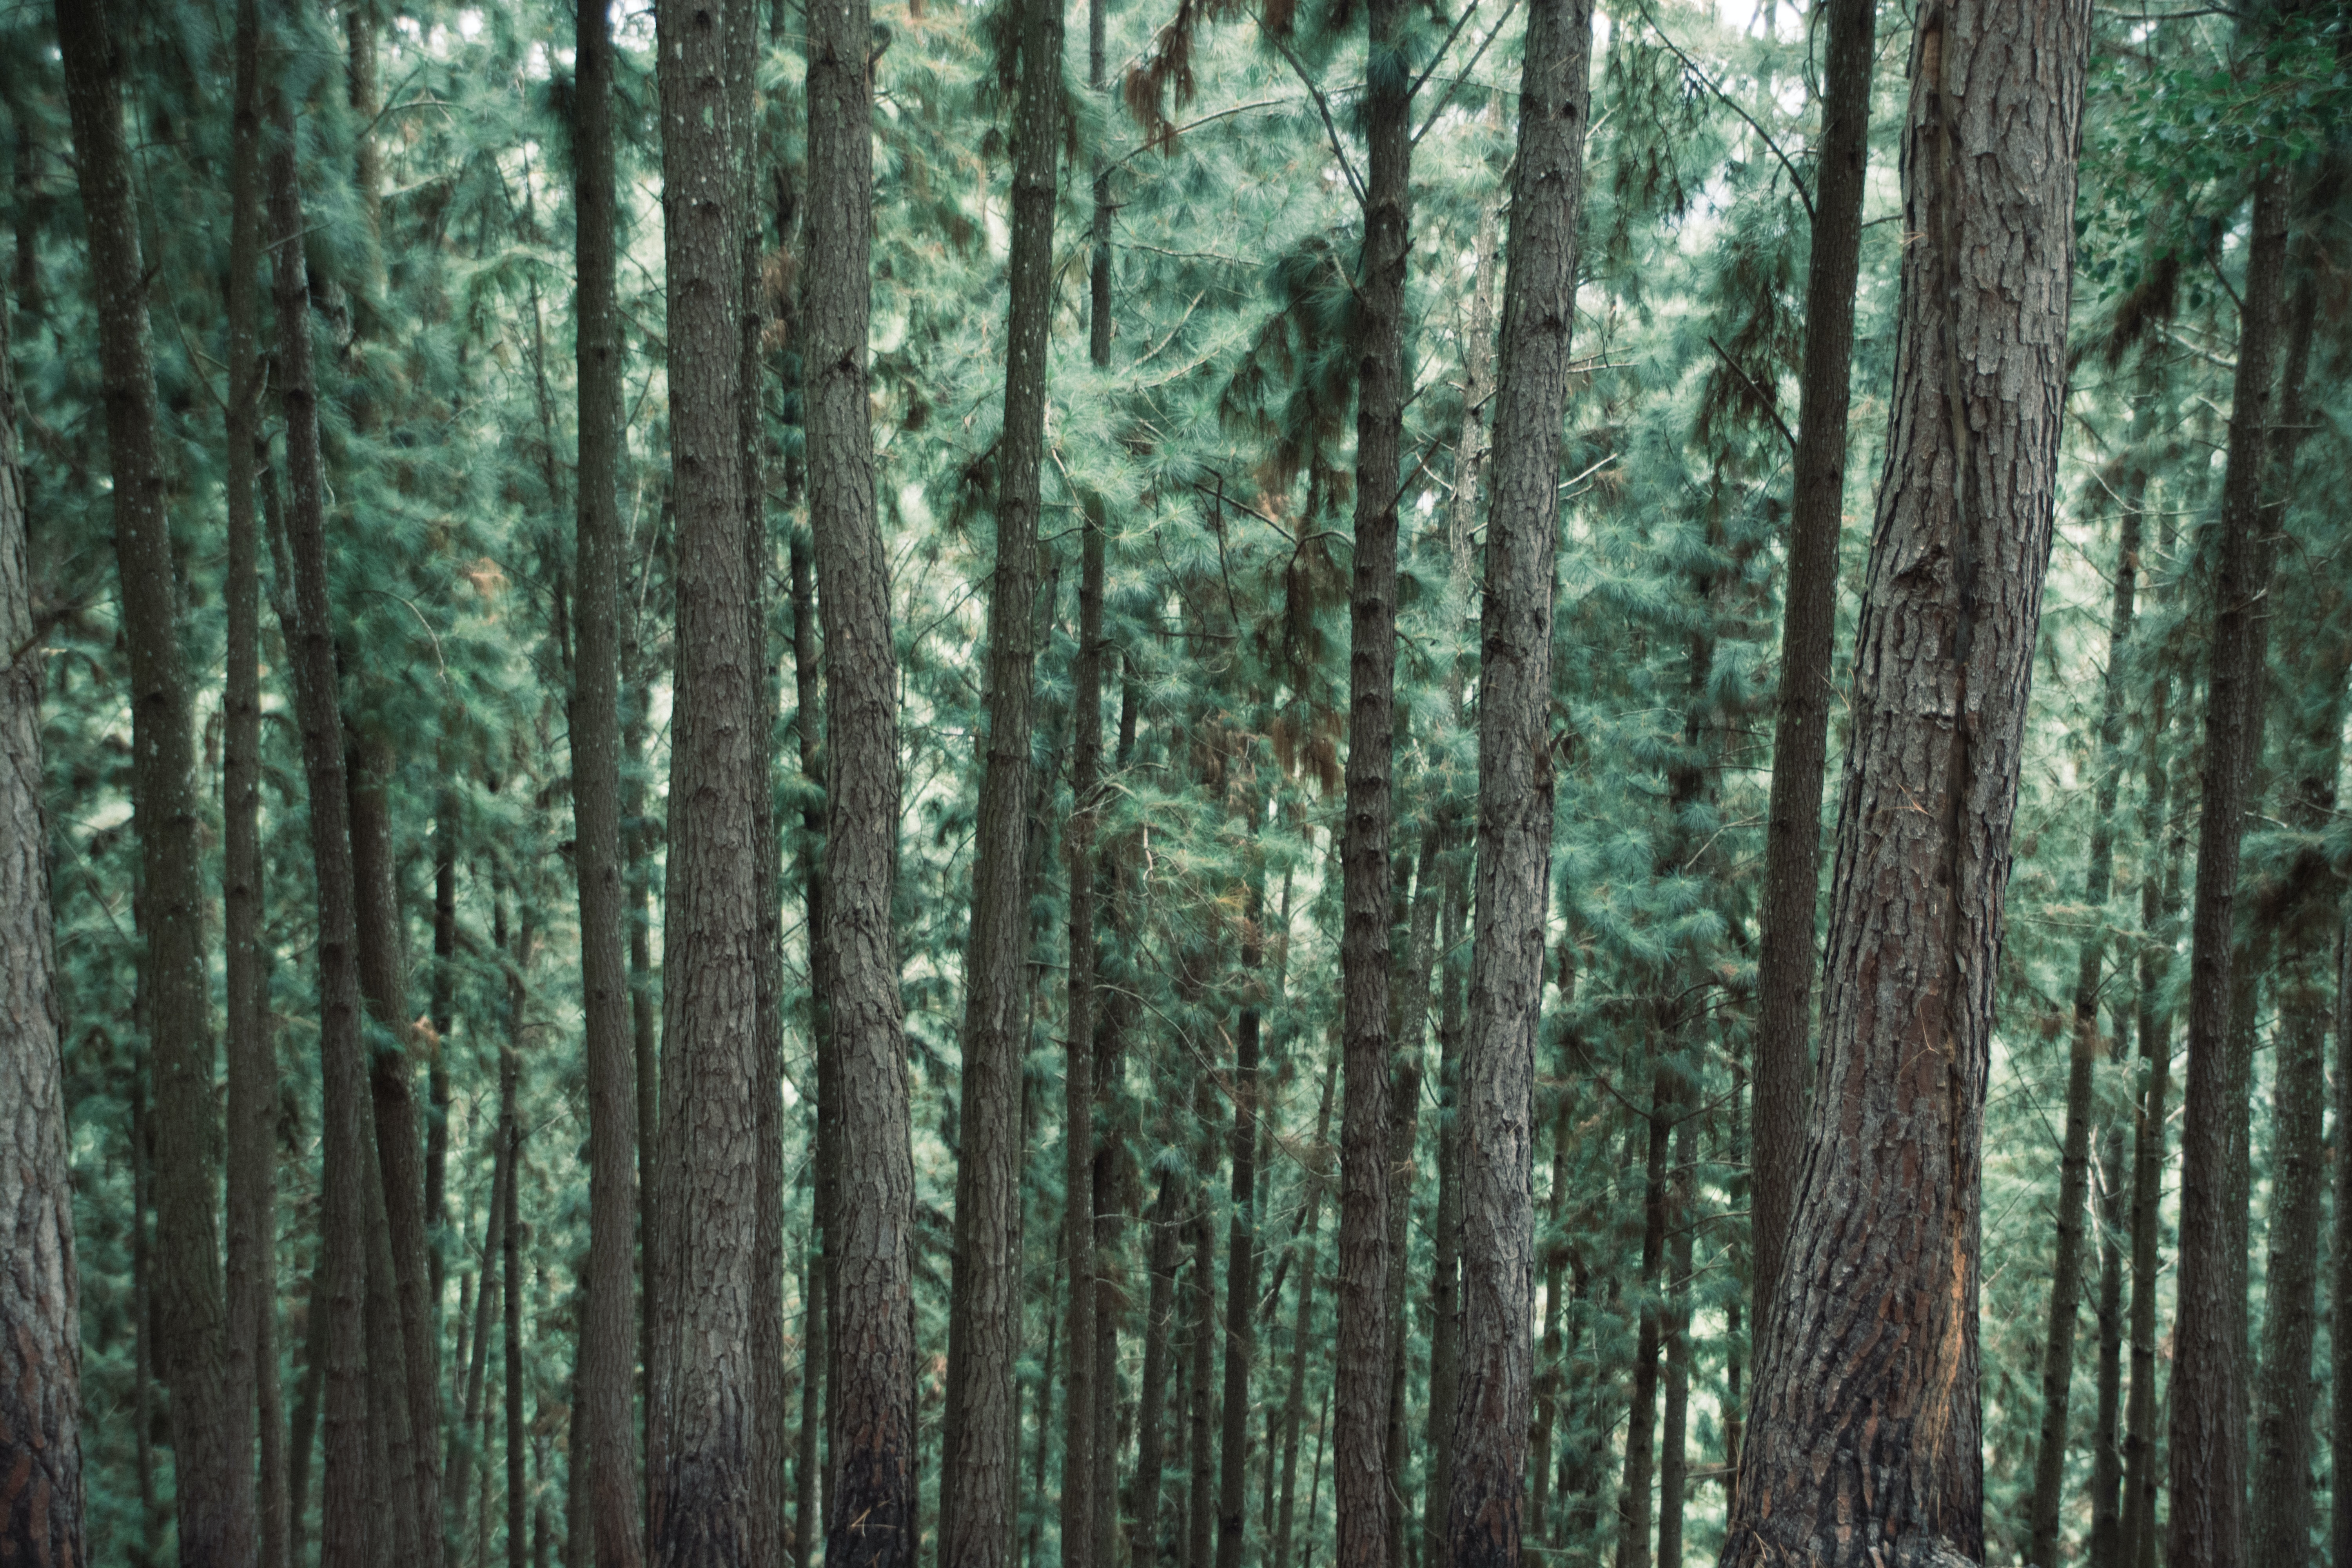 Tall pine tree trunks and green pine needles in a forest